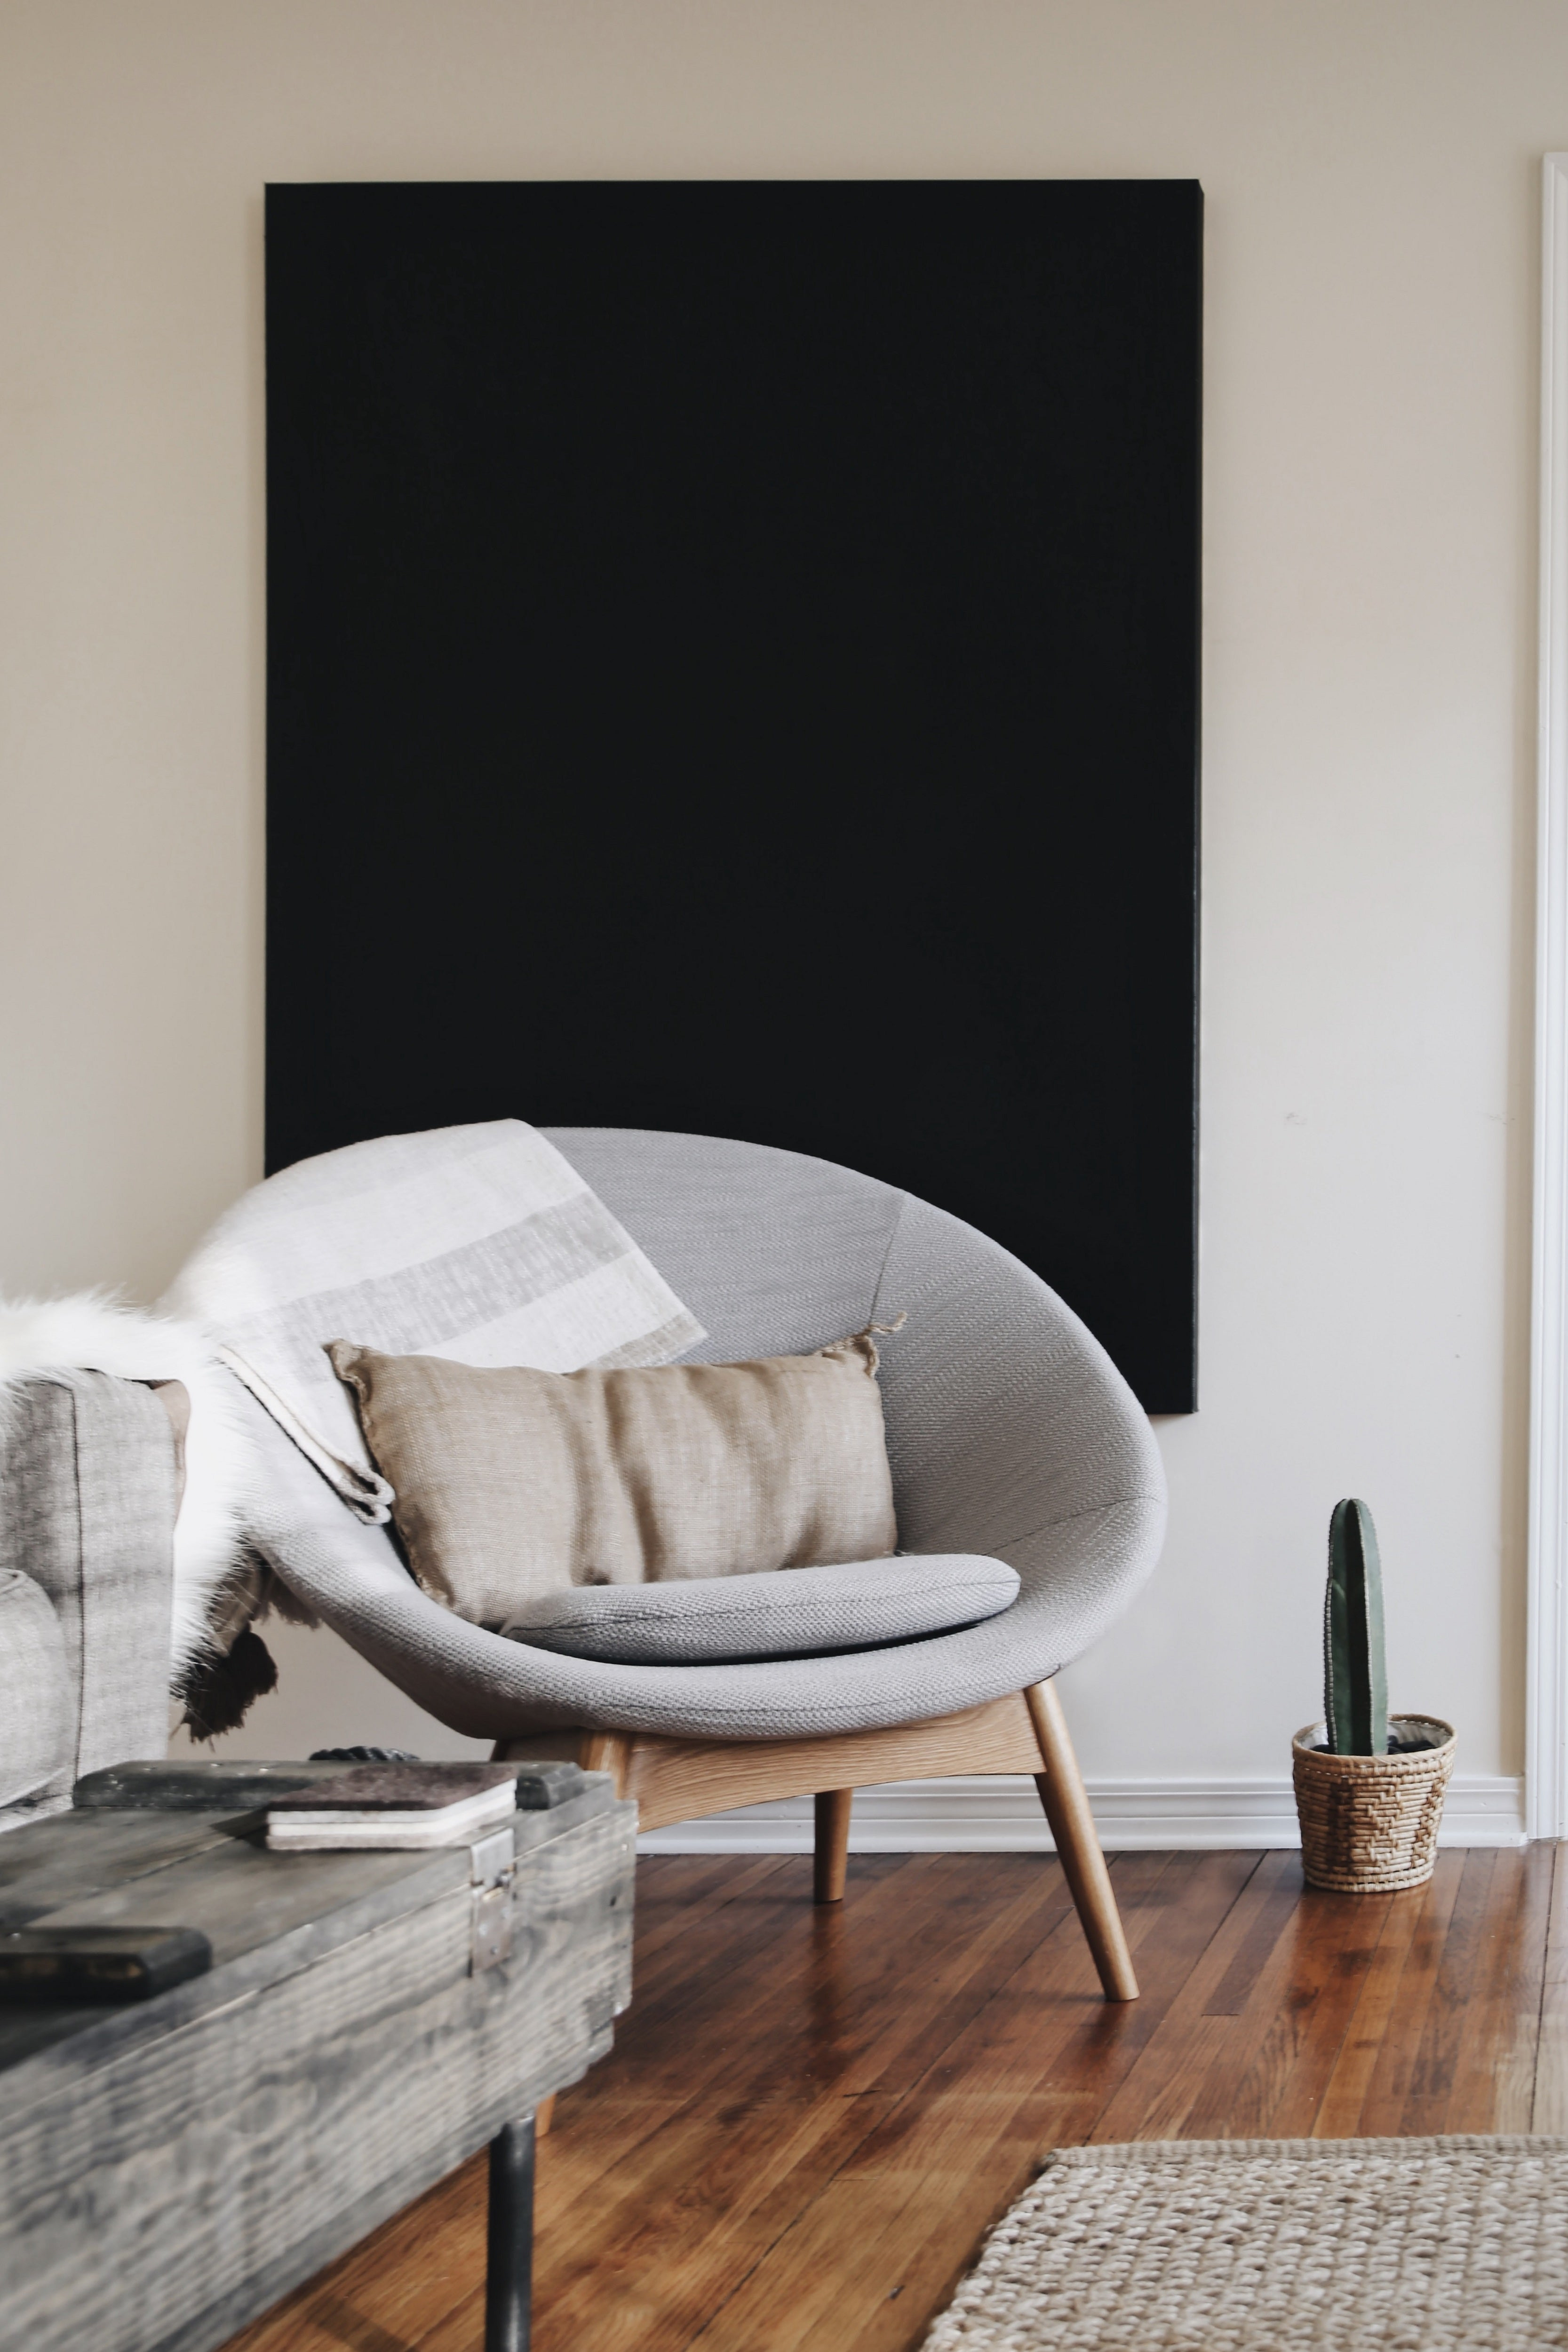 statement artwork, black canvas, heavy black paint, large print on wall behind designer chair, dark wooden floorboards, homely furnishings